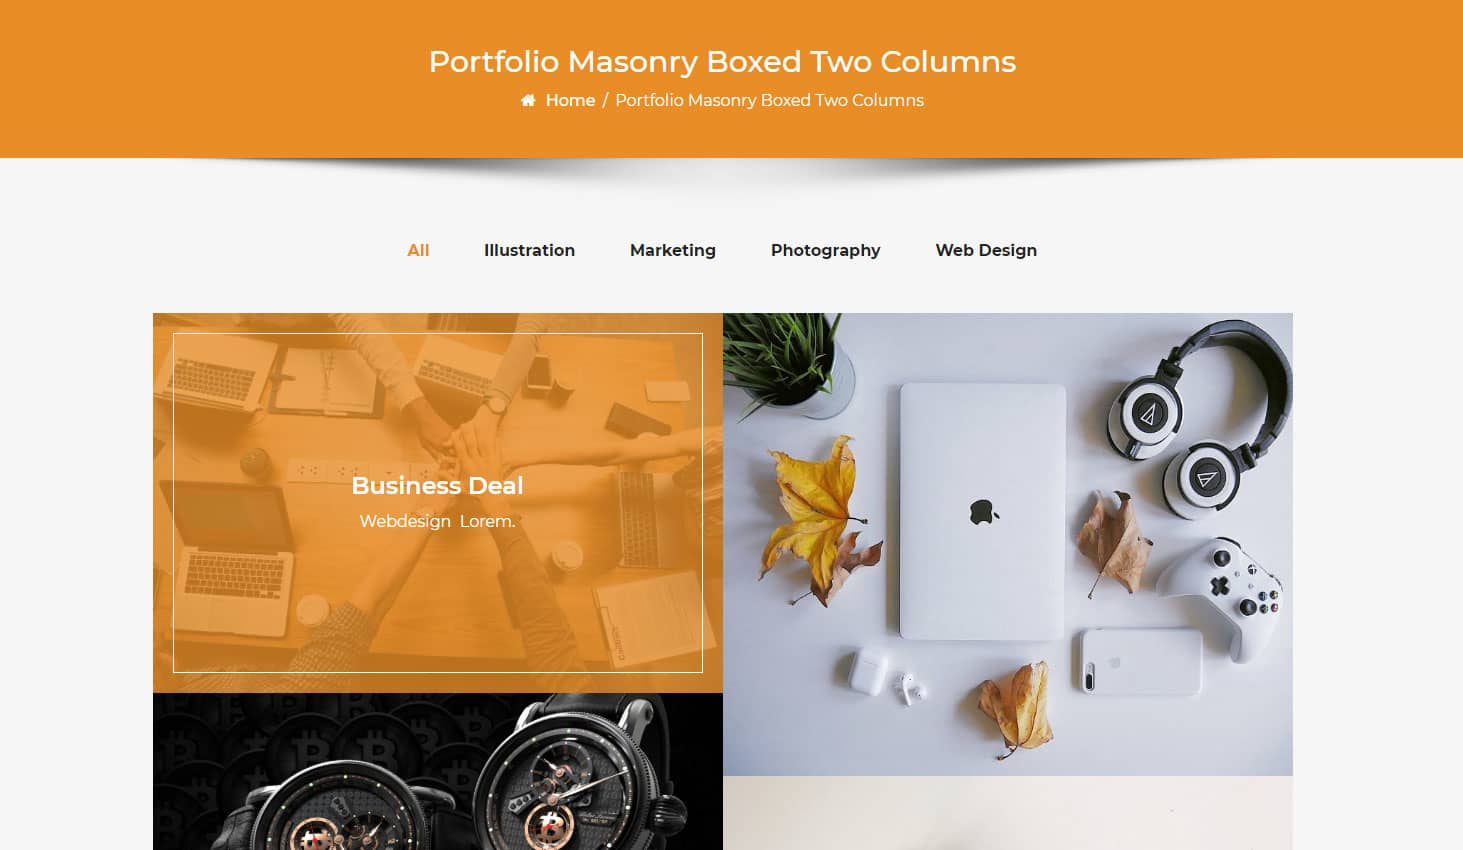 Crypto Premium WordPress Theme For Cryptocurrency Business and Blog Websites - A WP Life - Portfolio Masonry Boxed Two Column Layout Template